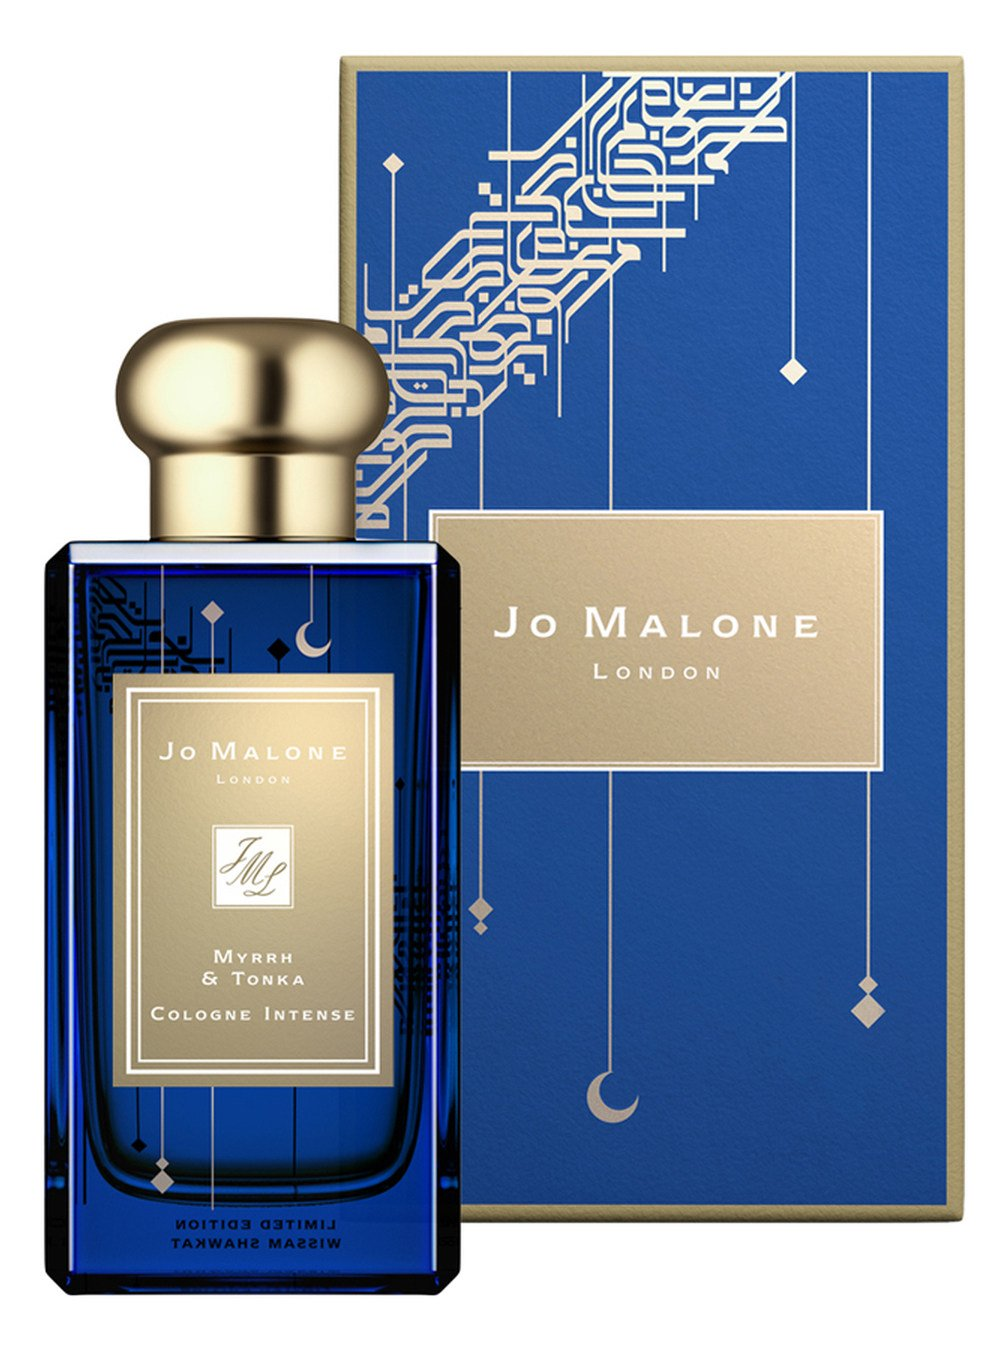 MYRRH & TONKA LIMITED EDITION by JO MALONE